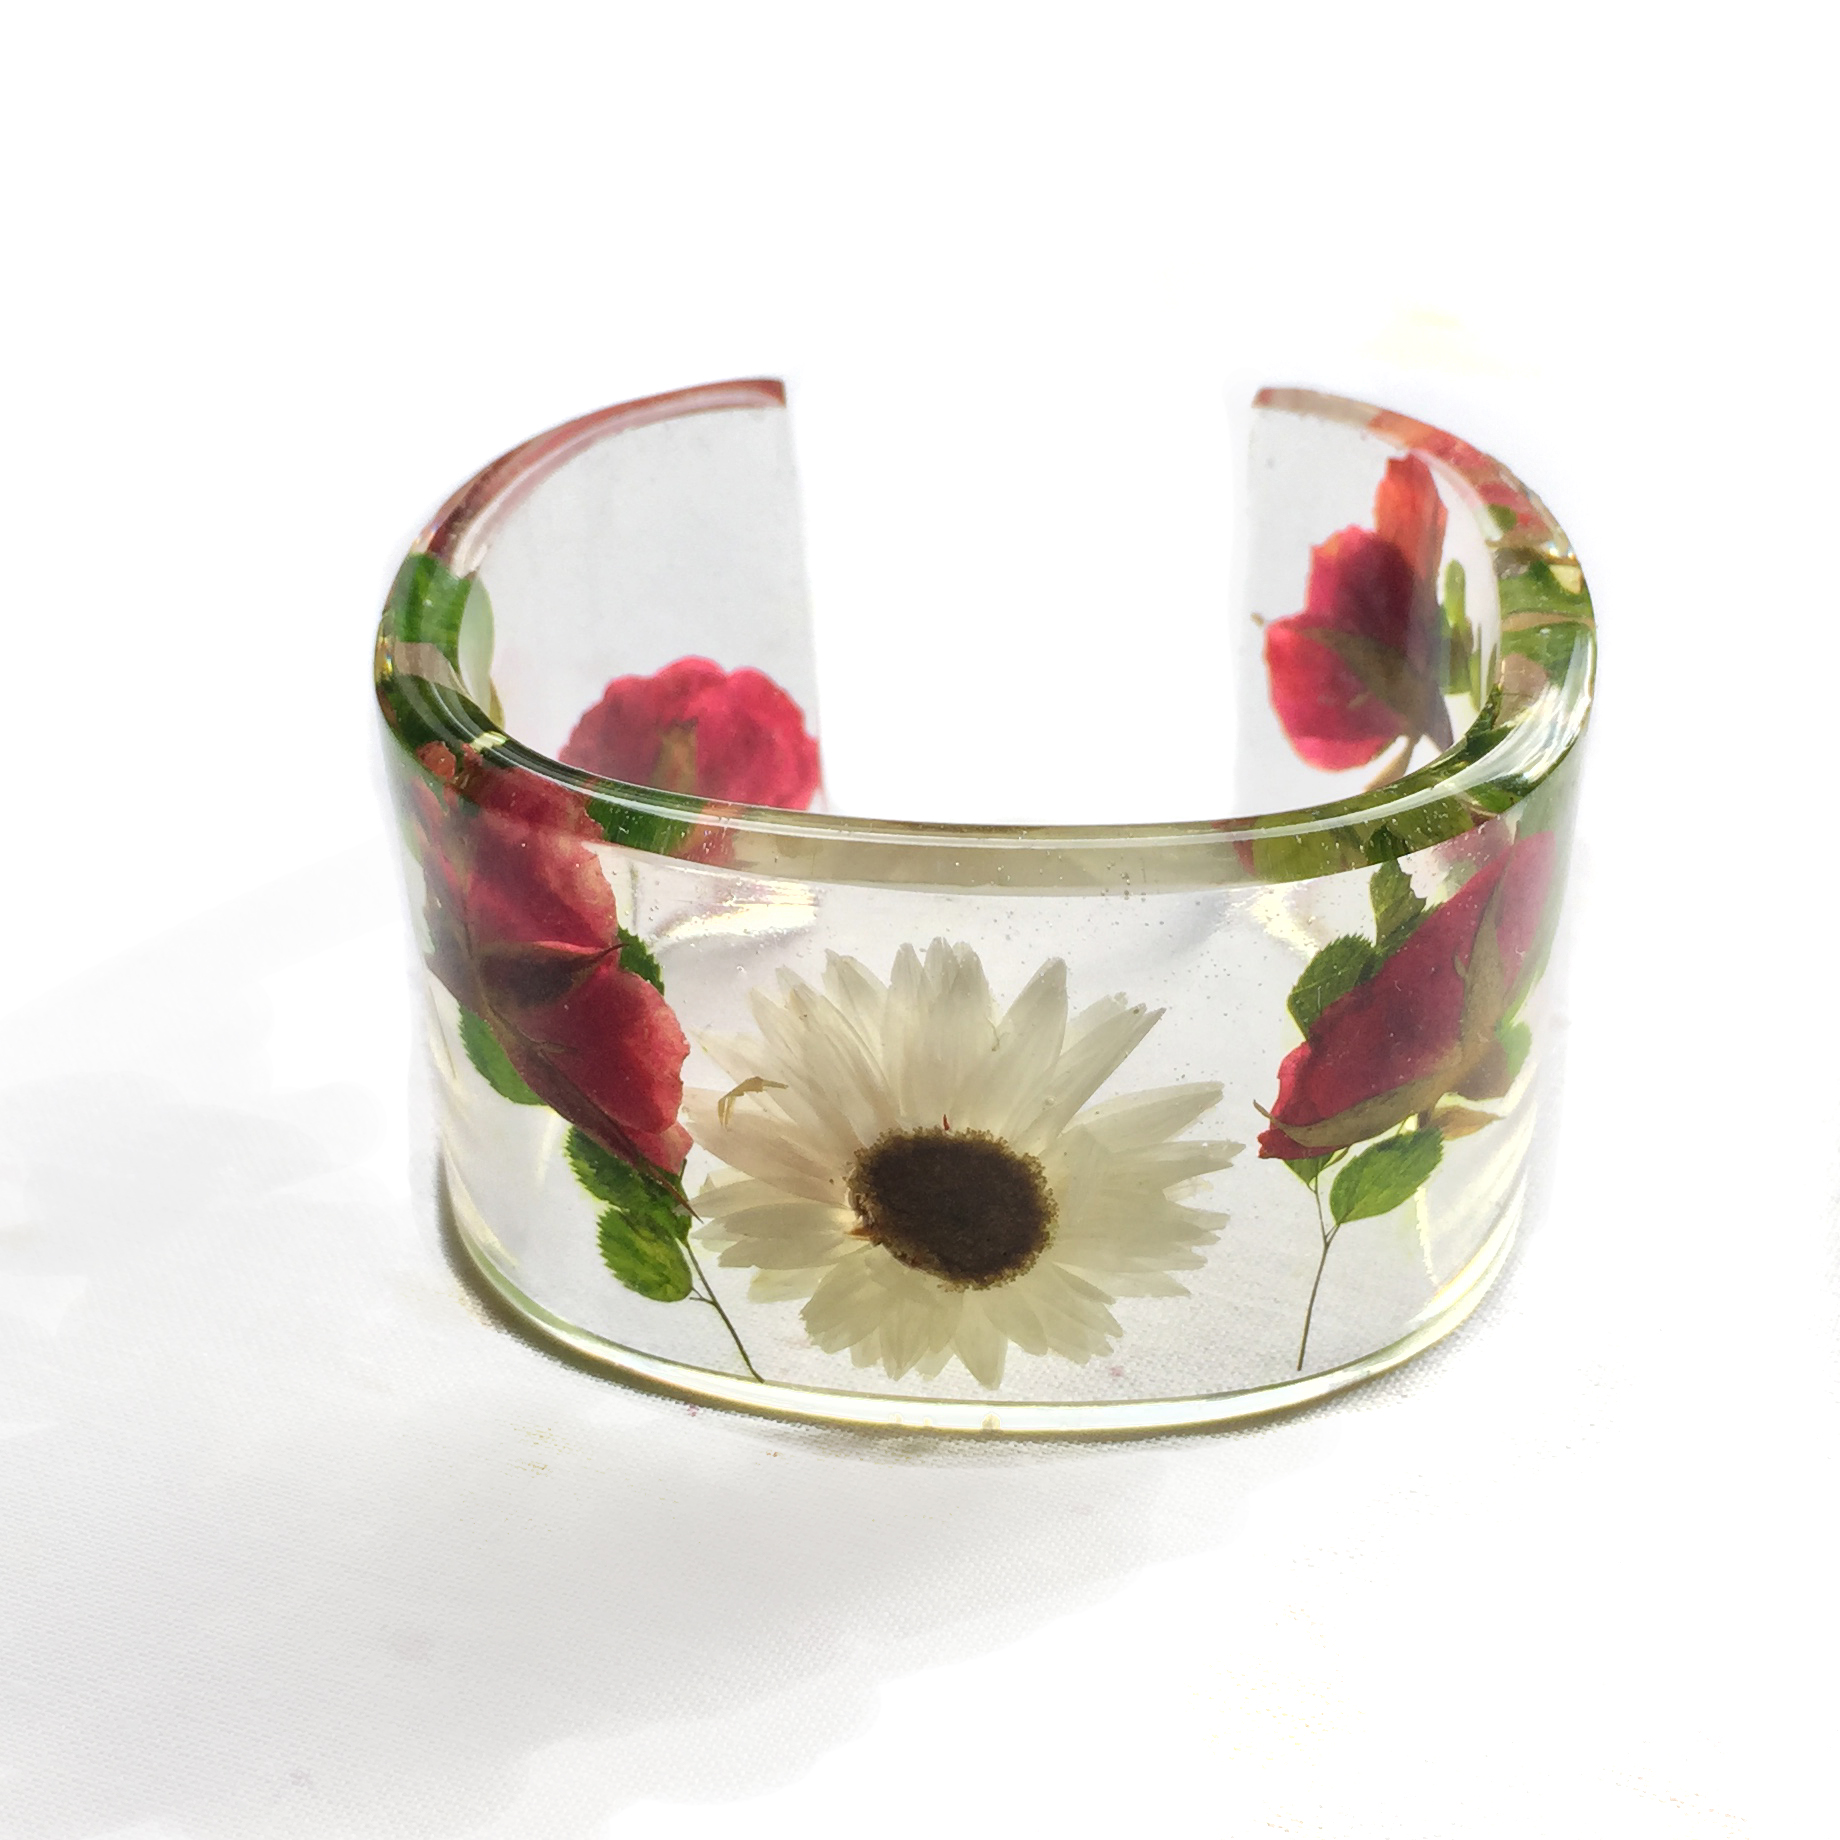 Clear resin bangle filled with white daisies and red rose buds